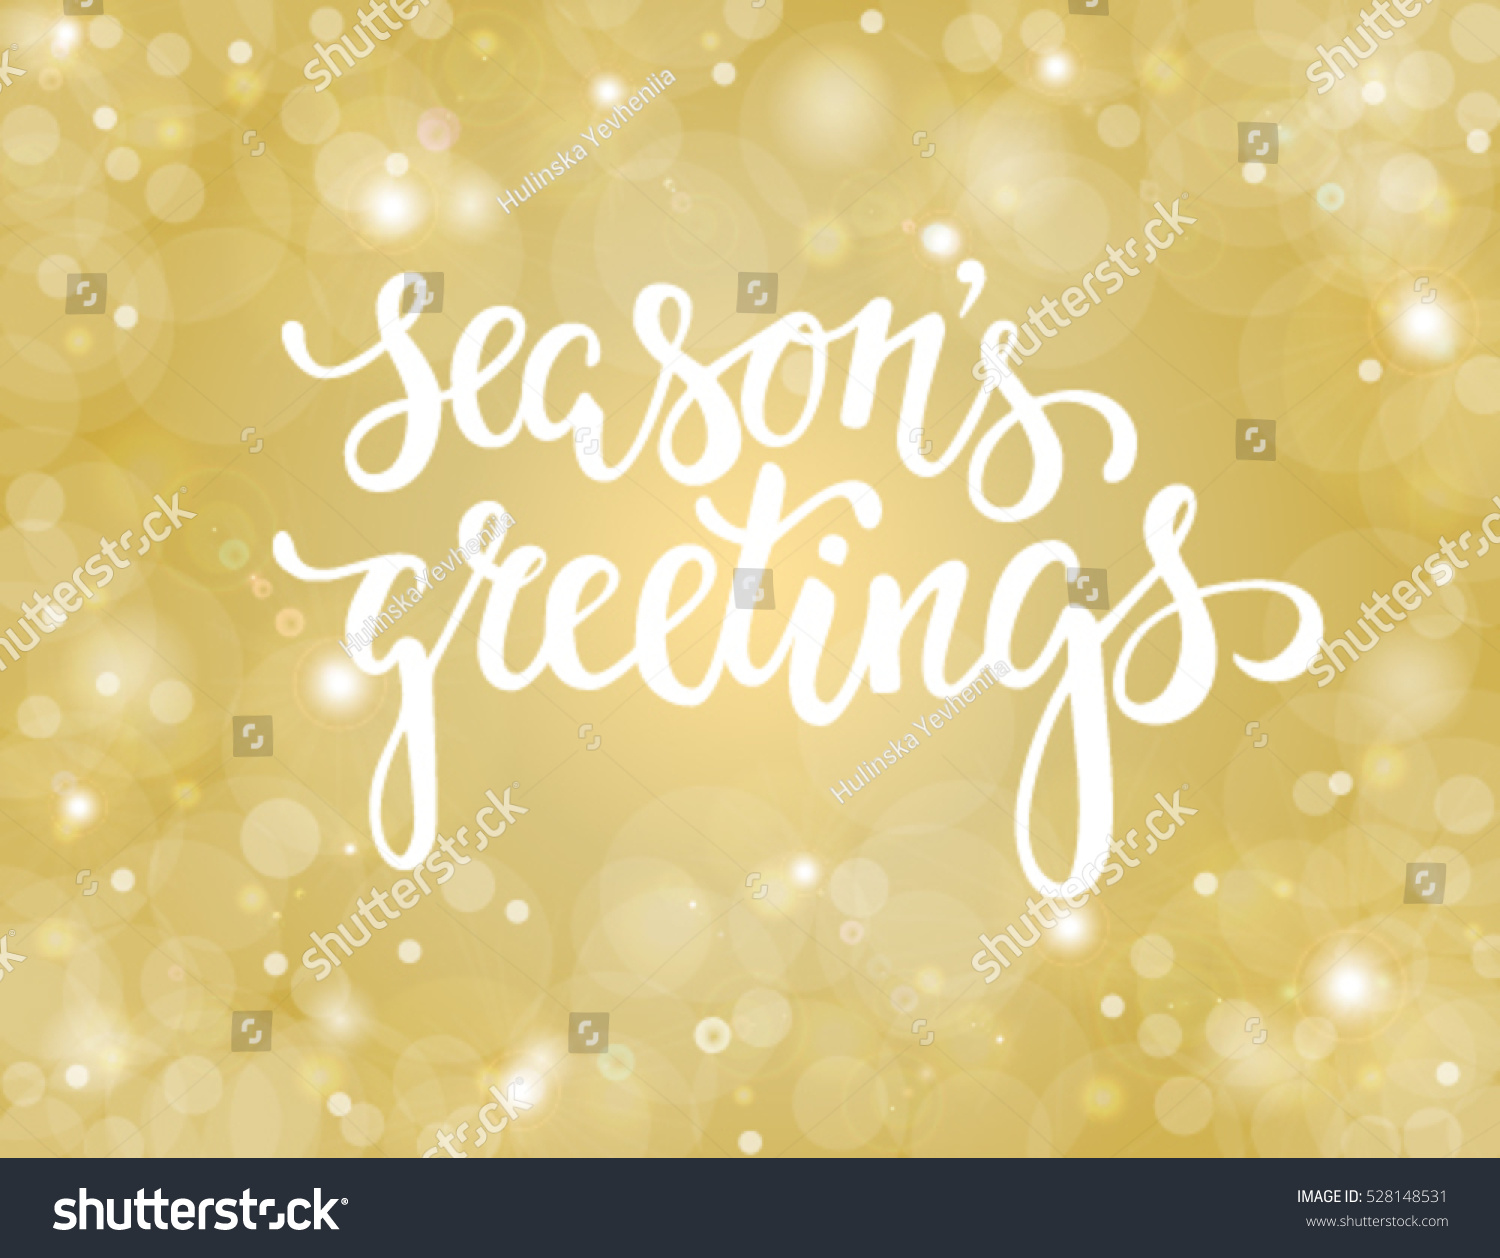 handdrawn lettering seasons greetings design for holiday greeting cards and invitations of the merry christmas - Seasons Greetings Cards